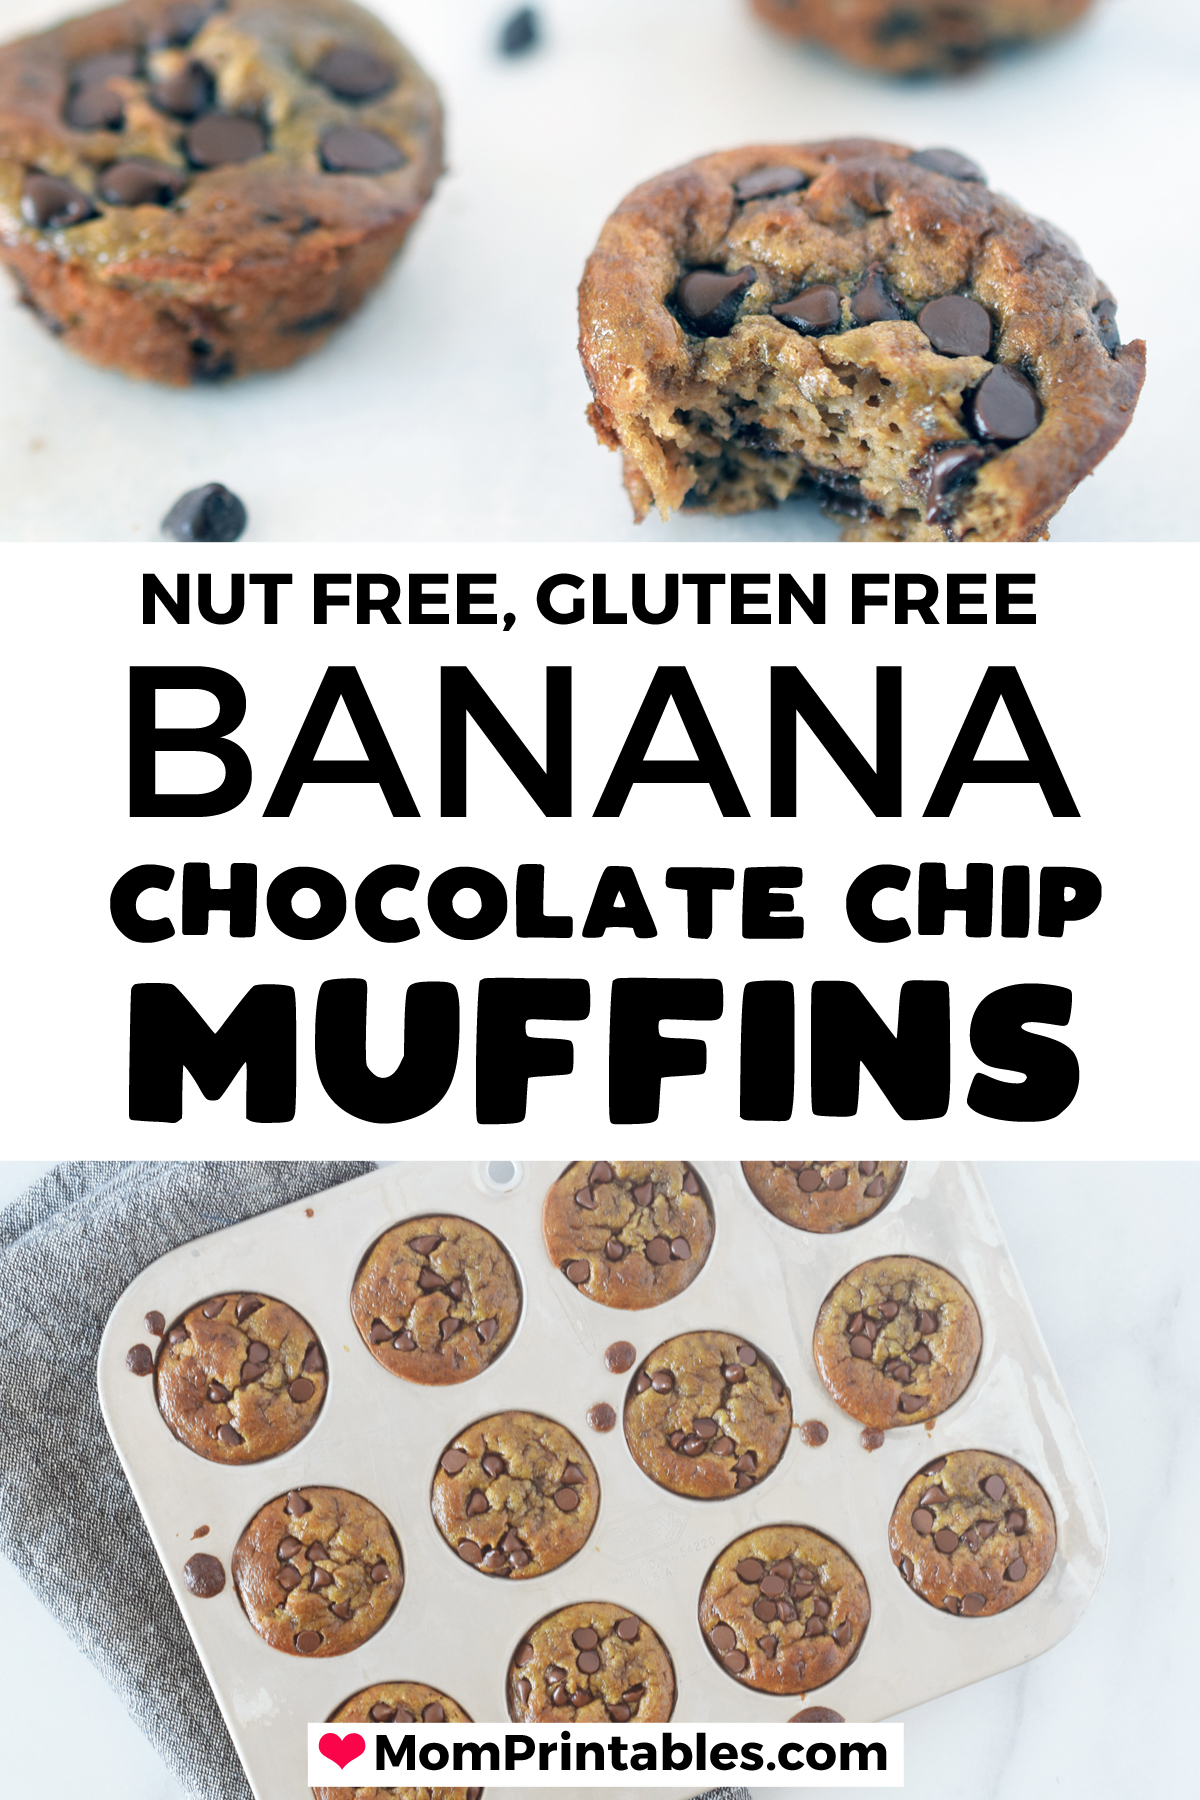 Flourless Sunbutter Banana Chocolate Muffins | healthy | nut free | clean eating | chocolate chips | food processor | blender | dairy free | maple syrup | refined sugar free | school snack | kids lunches | snacks | kids | fun | egg cups | sweet treats | simple | back to school | allergy friendly #kids #nutfree #snacks #muffins #allergyfriendly